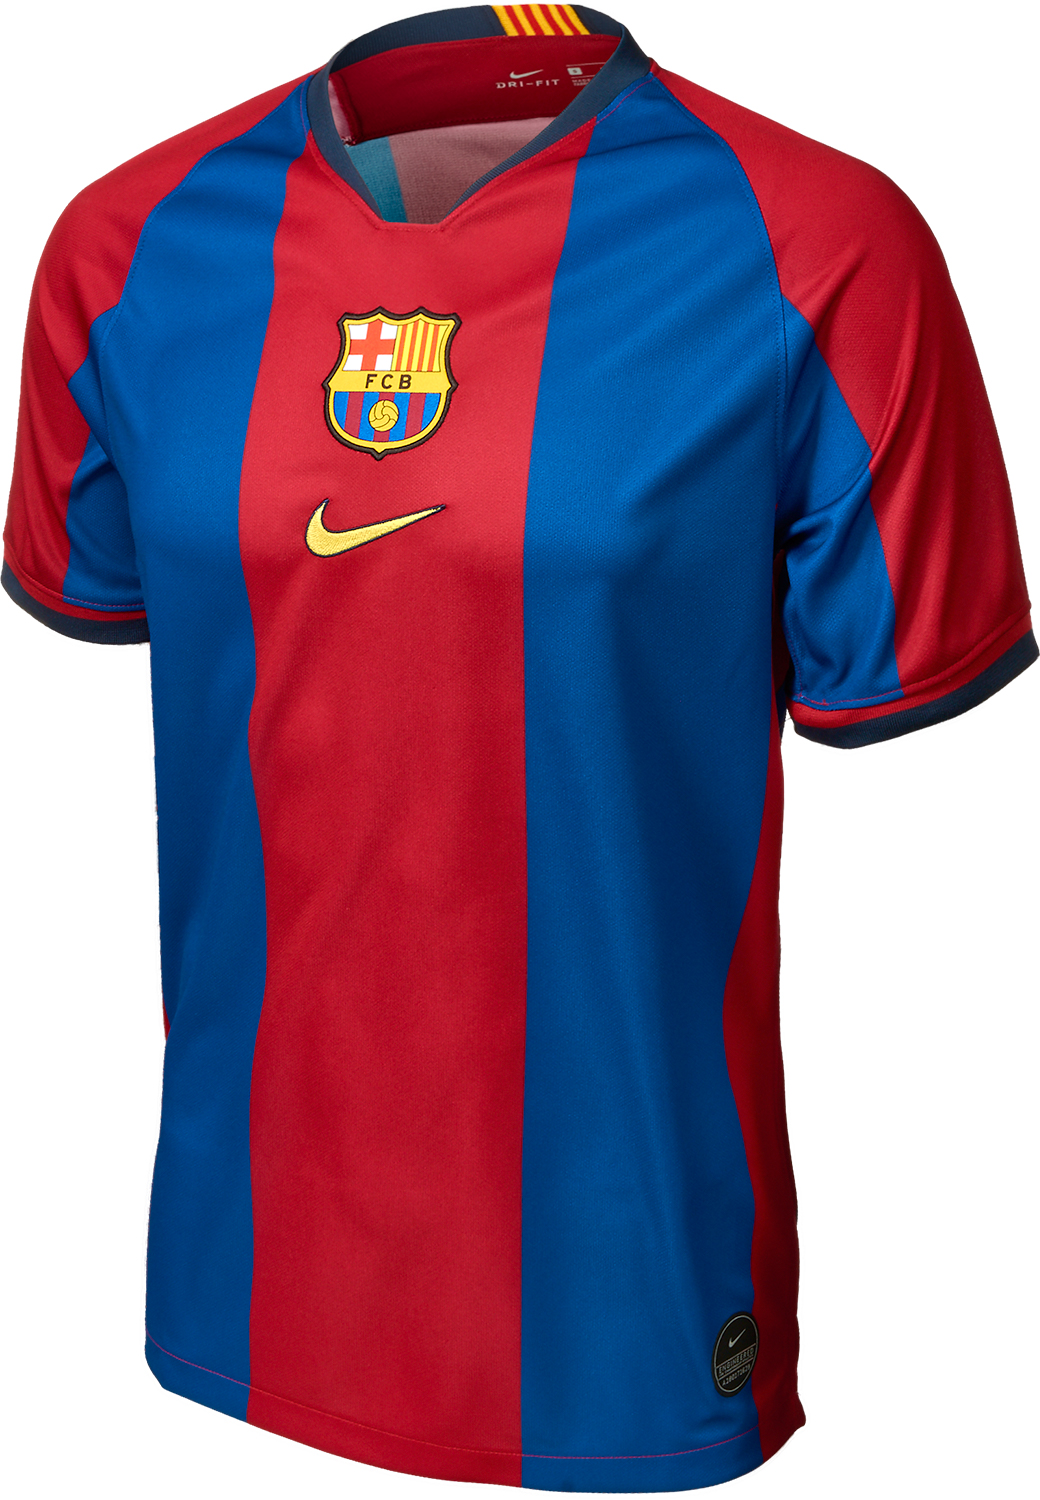 wholesale dealer 03491 00347 Nike Lionel Messi 98/99 Barcelona Home Jersey - SoccerPro